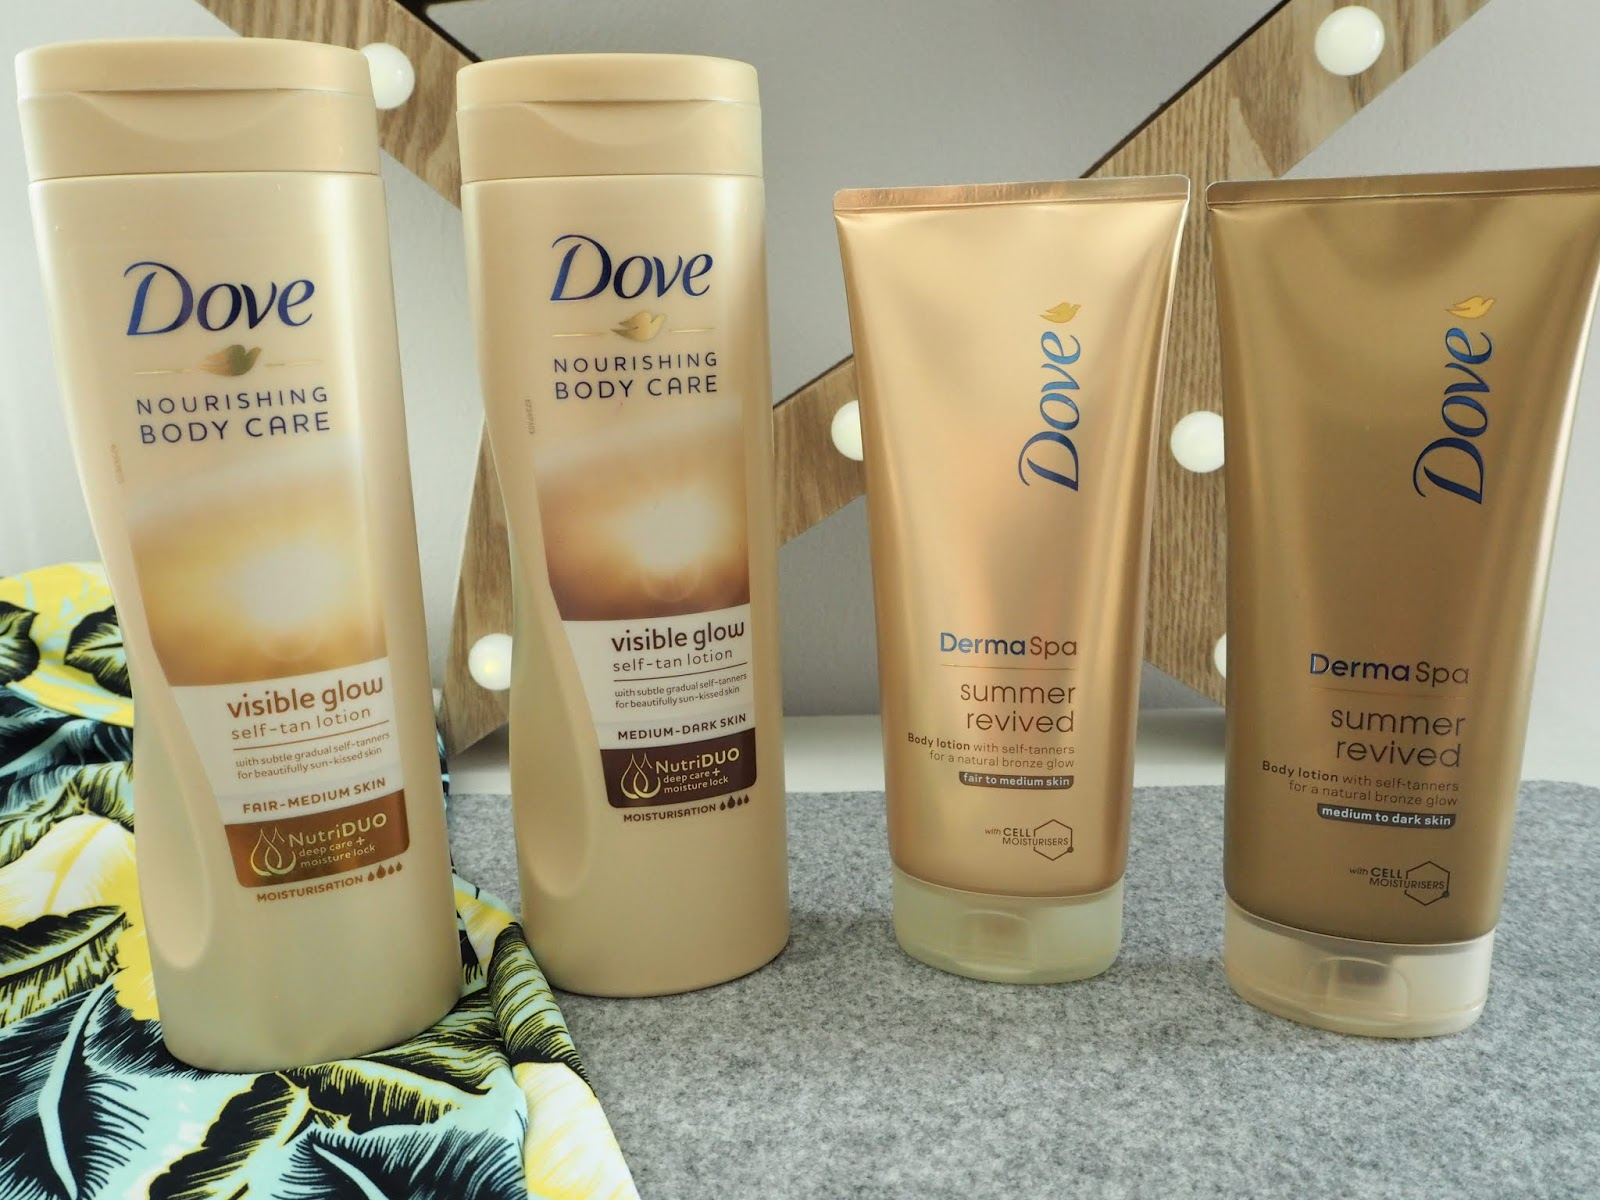 Dove Dermaspa Summer Revived review